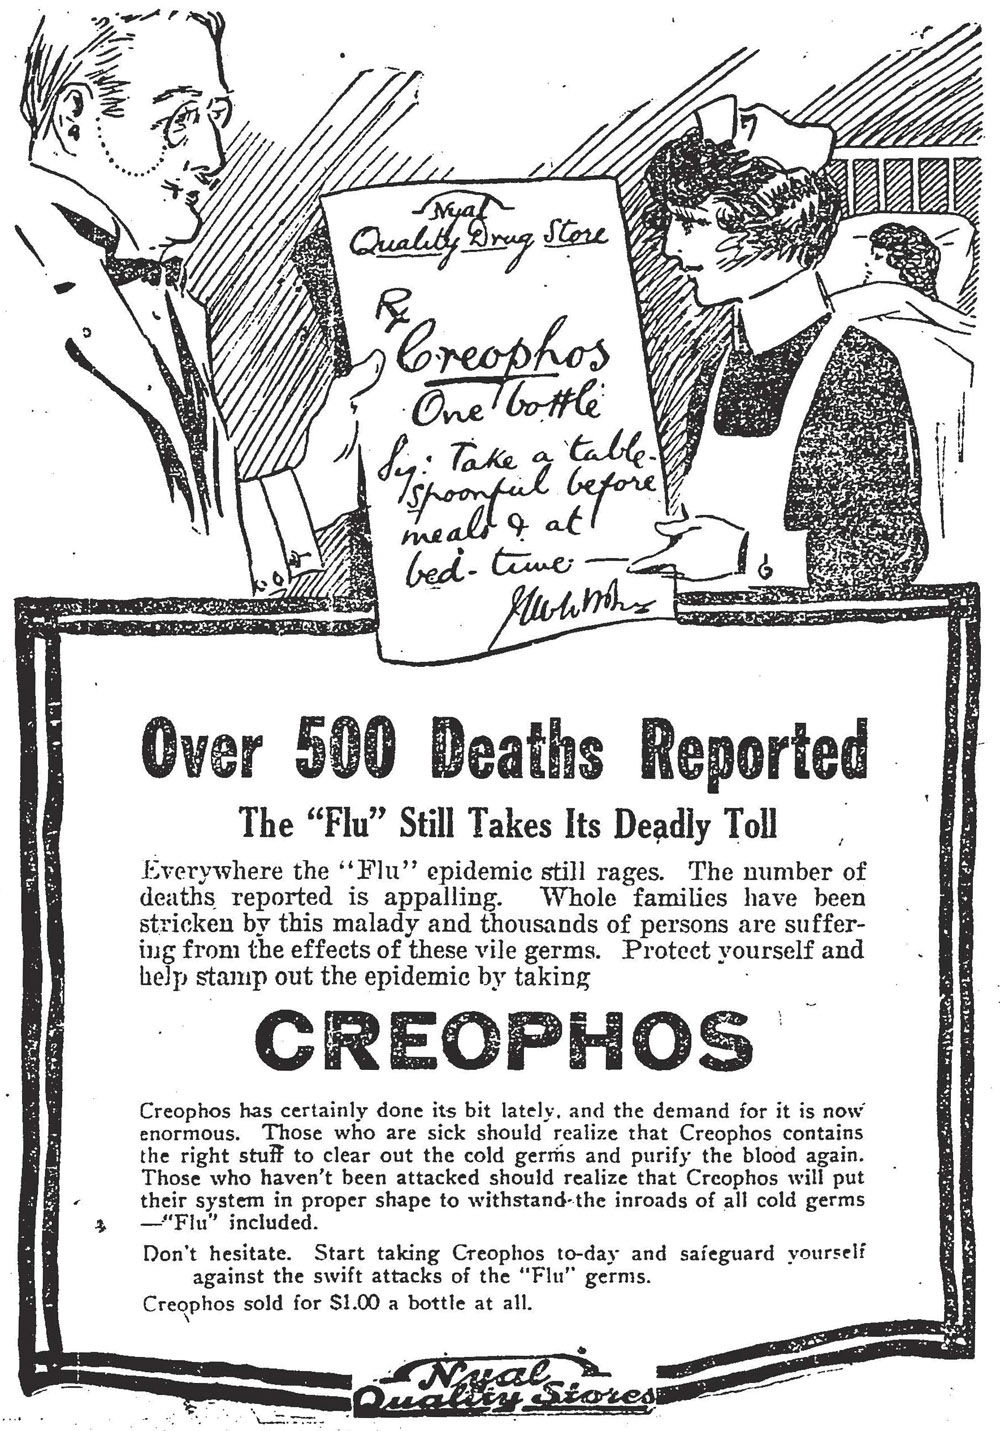 A 1918 ad for medicine to combat the Spanish Flu